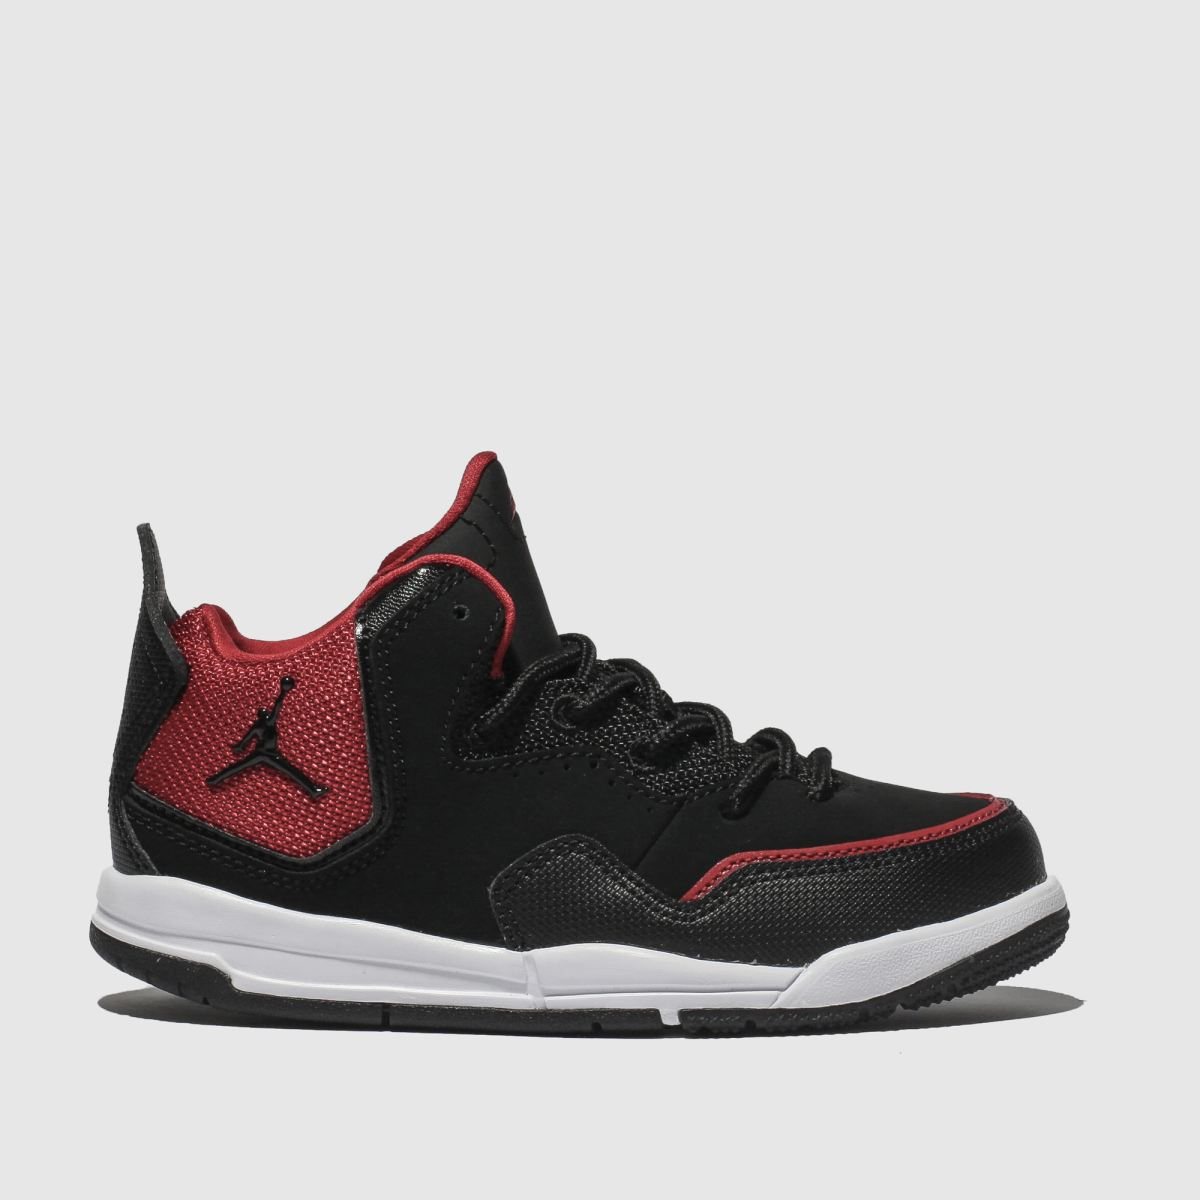 e7bdfad5603 Nike Jordan Black & Red Courtside 23 Trainers Junior - Female First Shopping